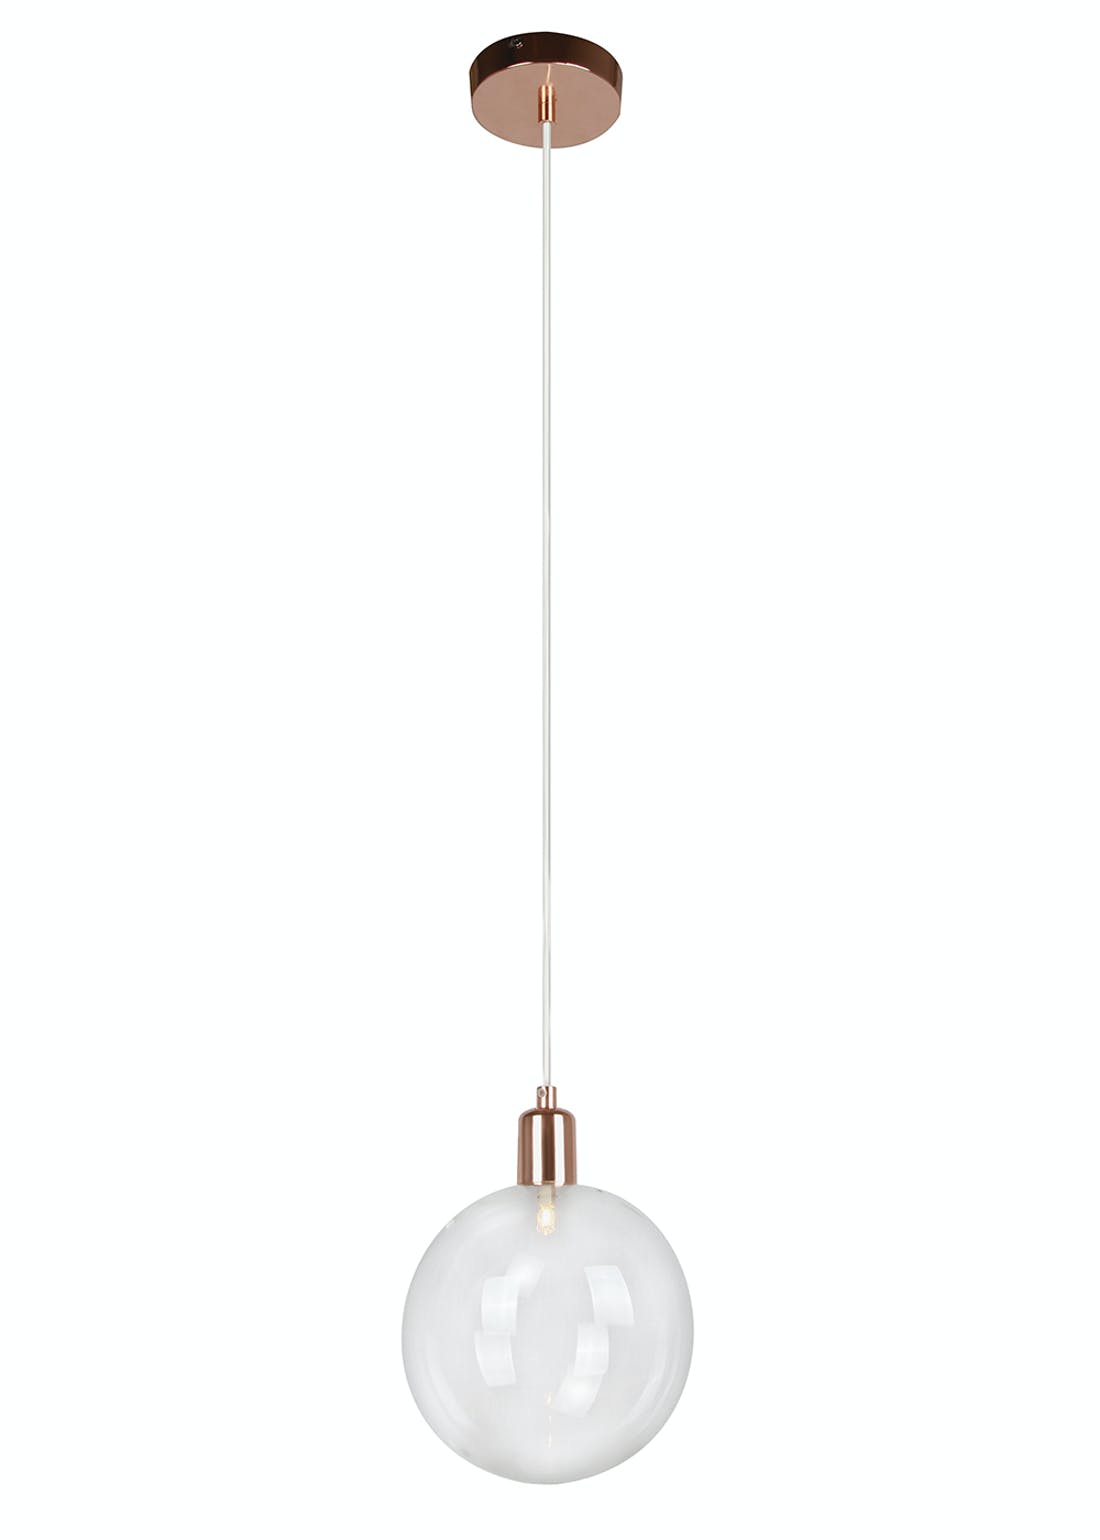 Byron Copper Pendant Light (H110cm-51cm x W18cm)